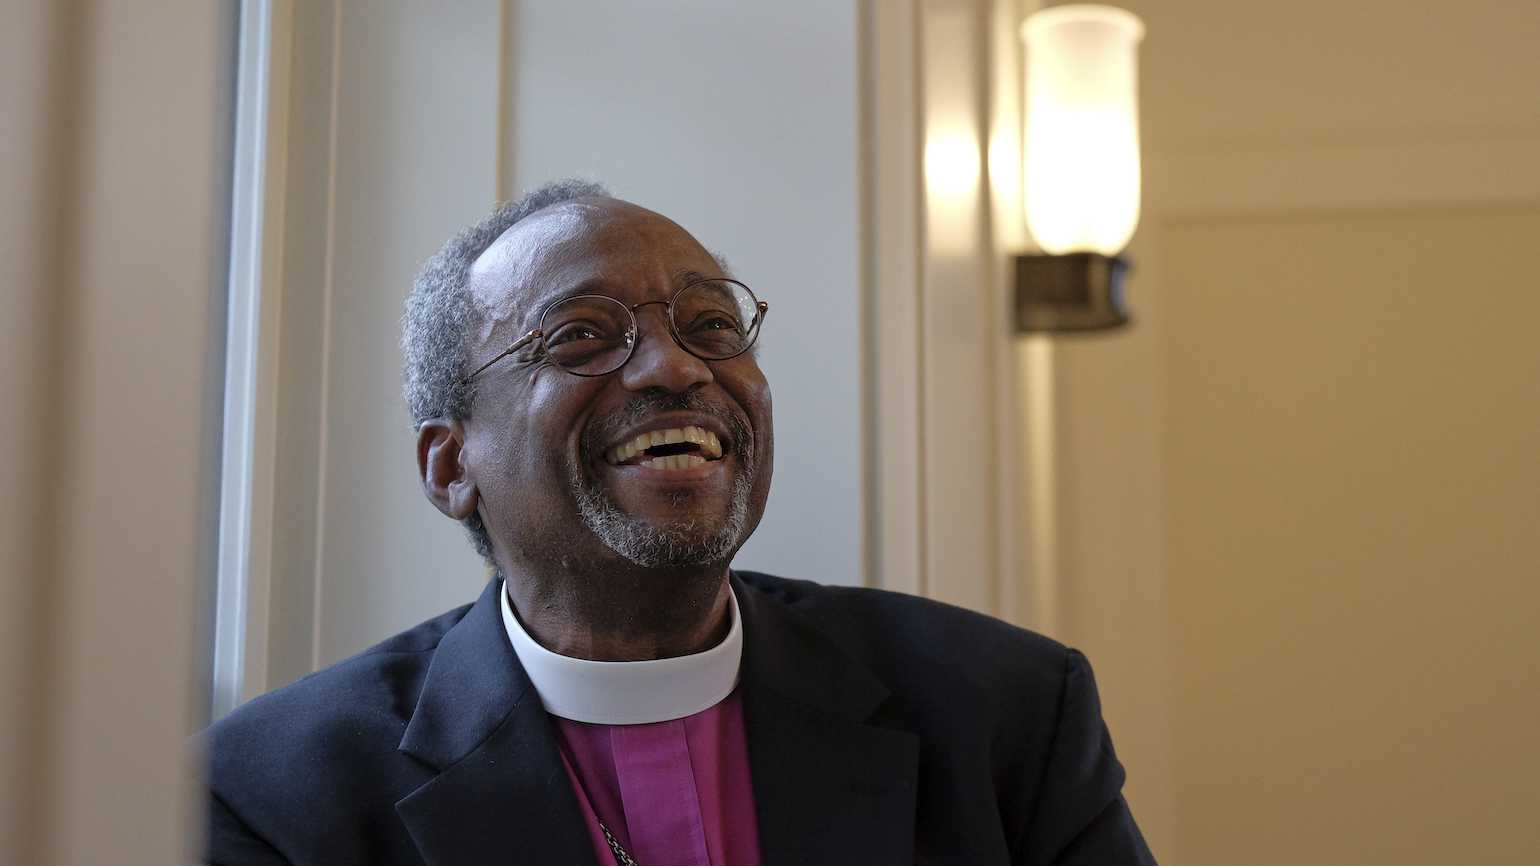 Bishop Michael Curry to speak at Royal Wedding